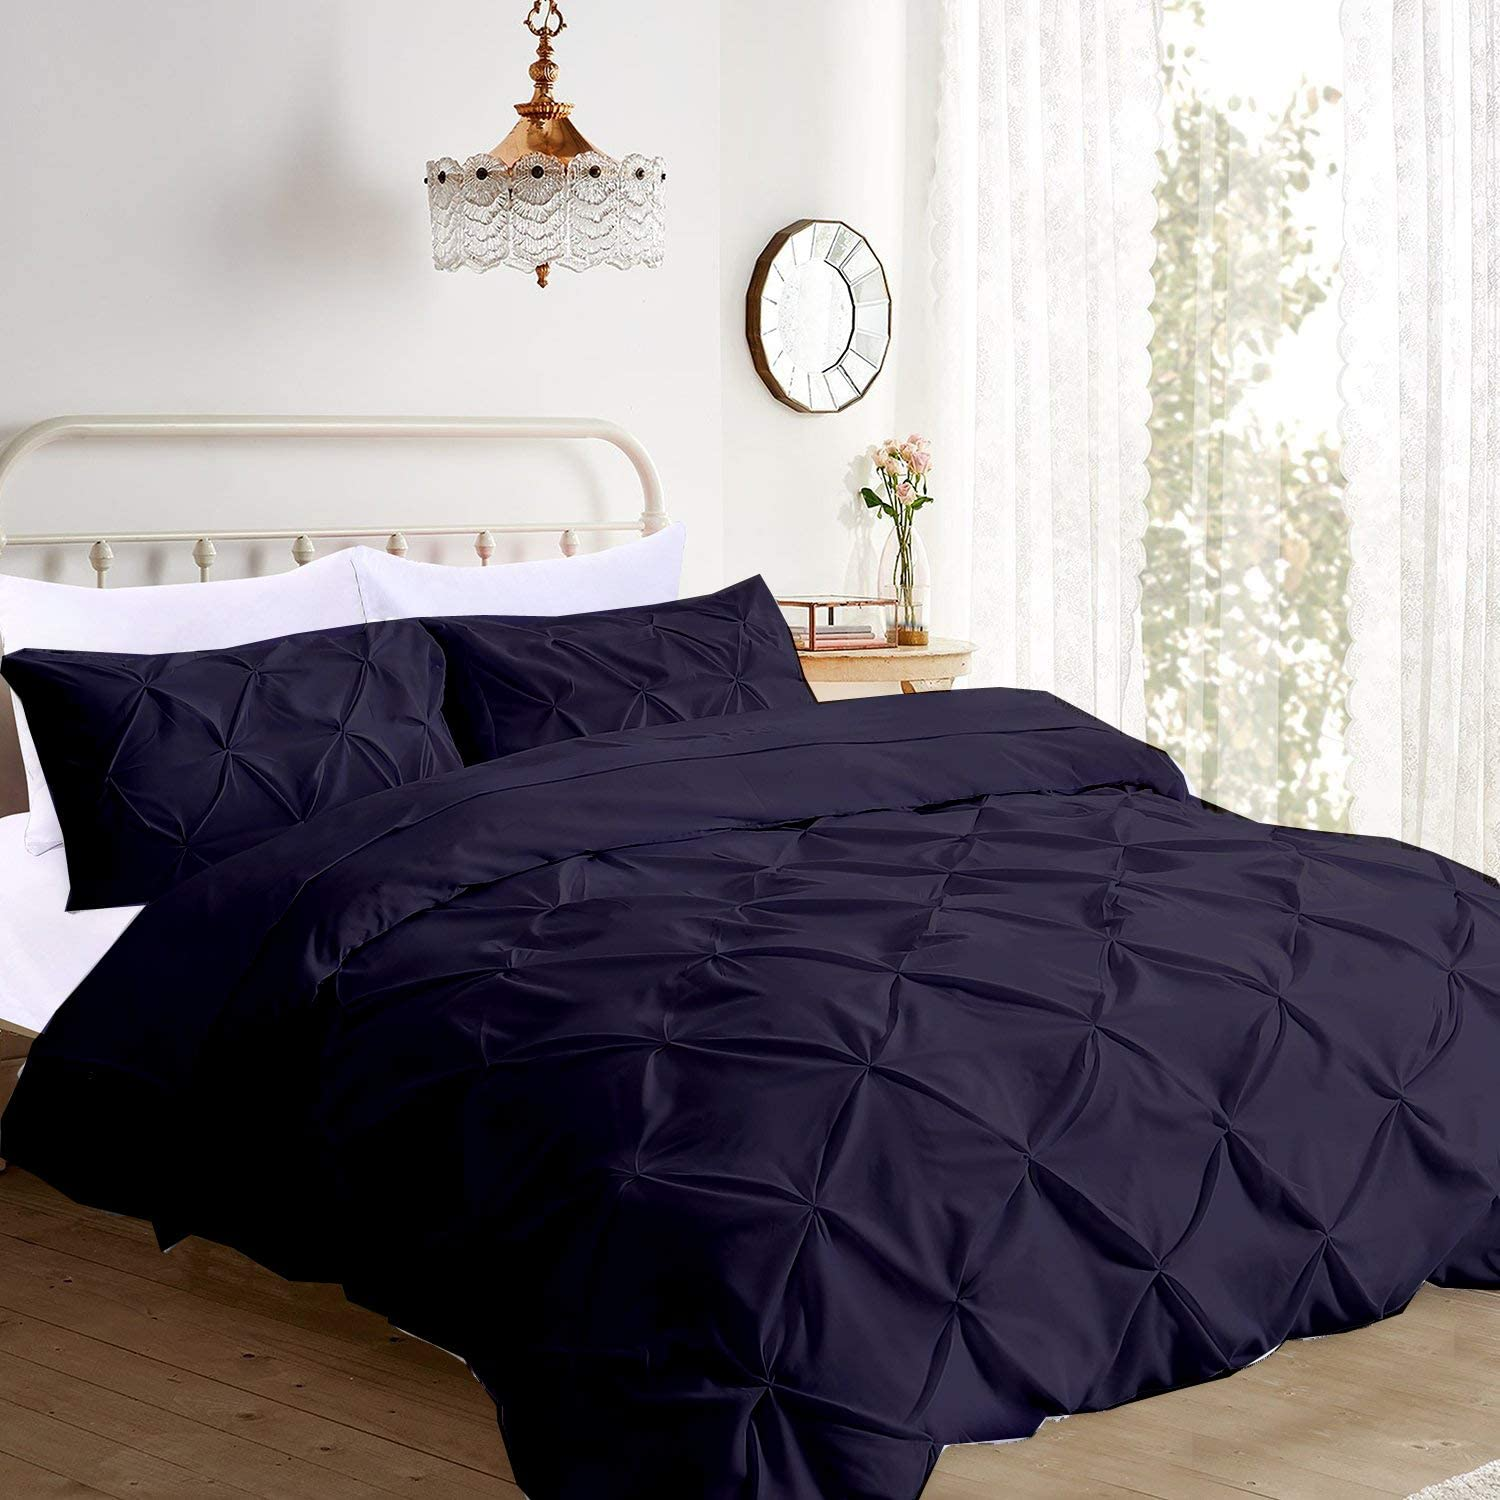 Pinch Pleated 3 Piece Duvet Cover Set 100% Egyptian Cotton 1000 Thread Count with Zipper & Corner Ties Rectangle Pattern Decorative Pintuck Pillow Shmas (92x102 King Size, Dark Blue)